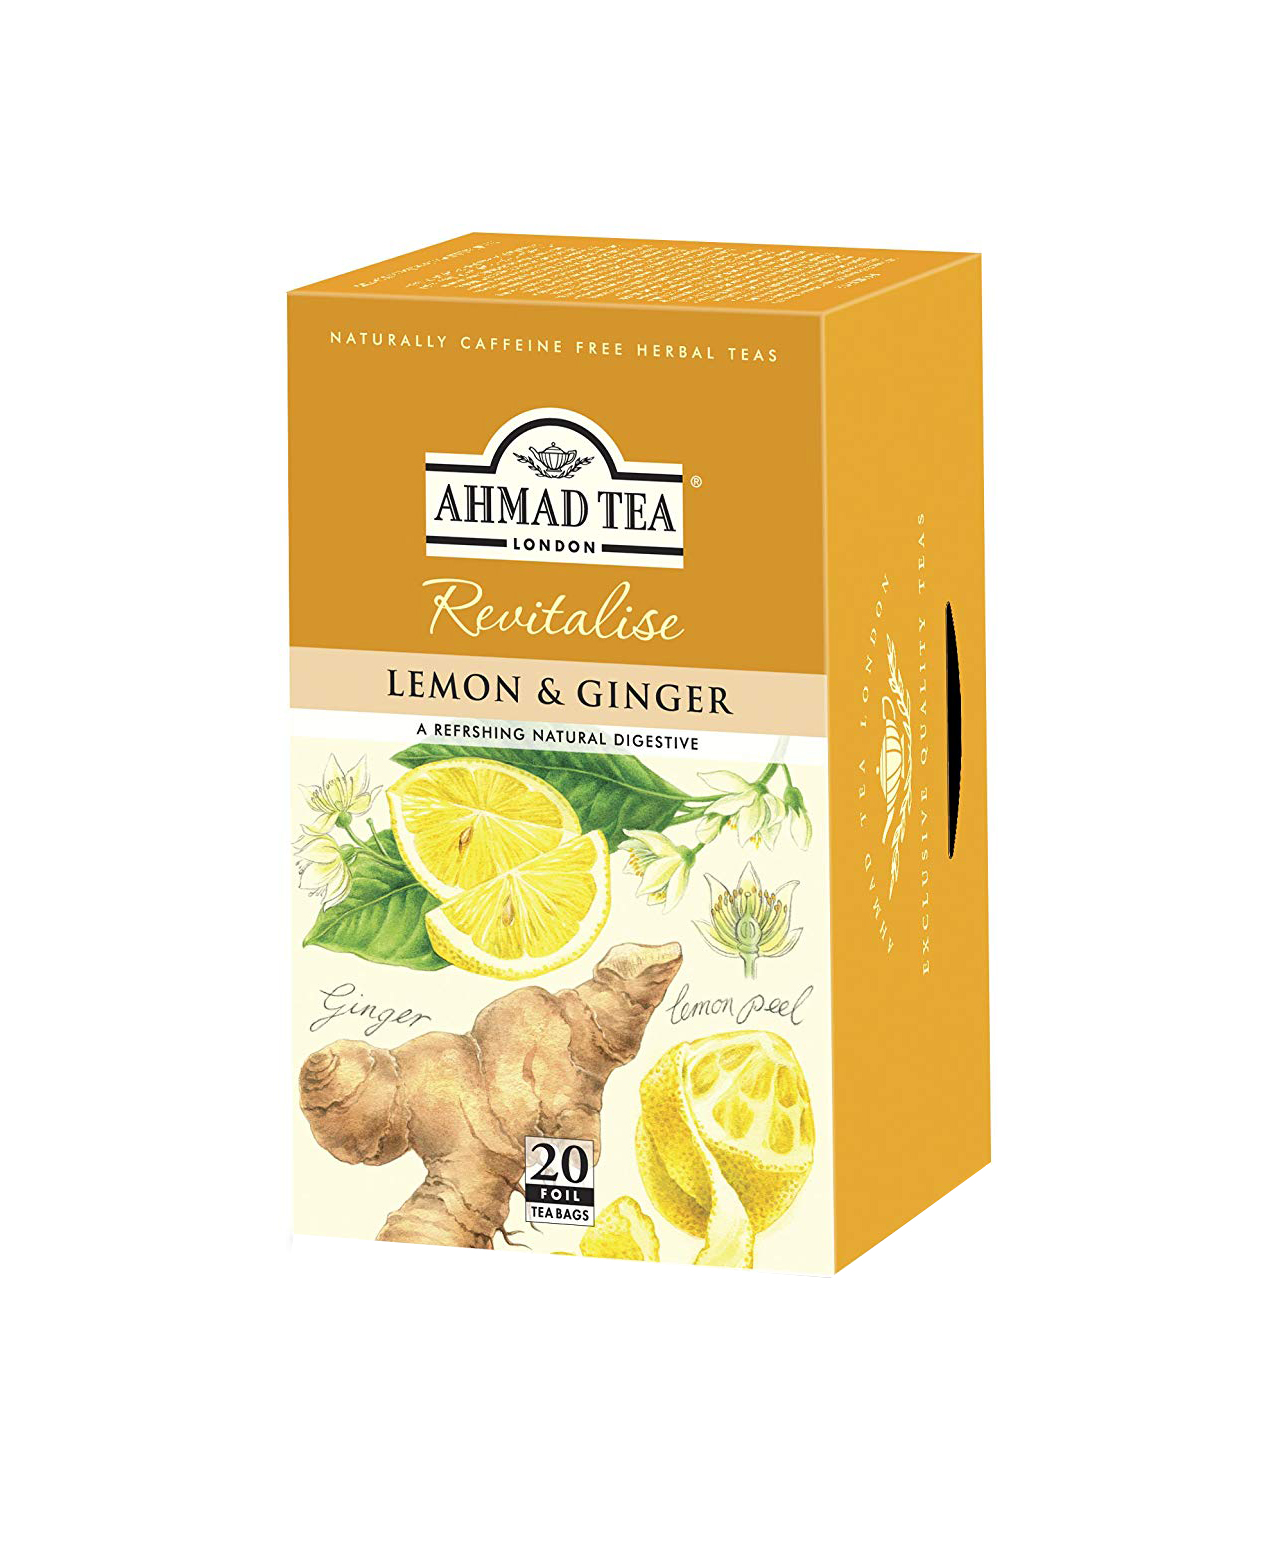 AHMAD TEA LEMON & GINGER(5x40G)